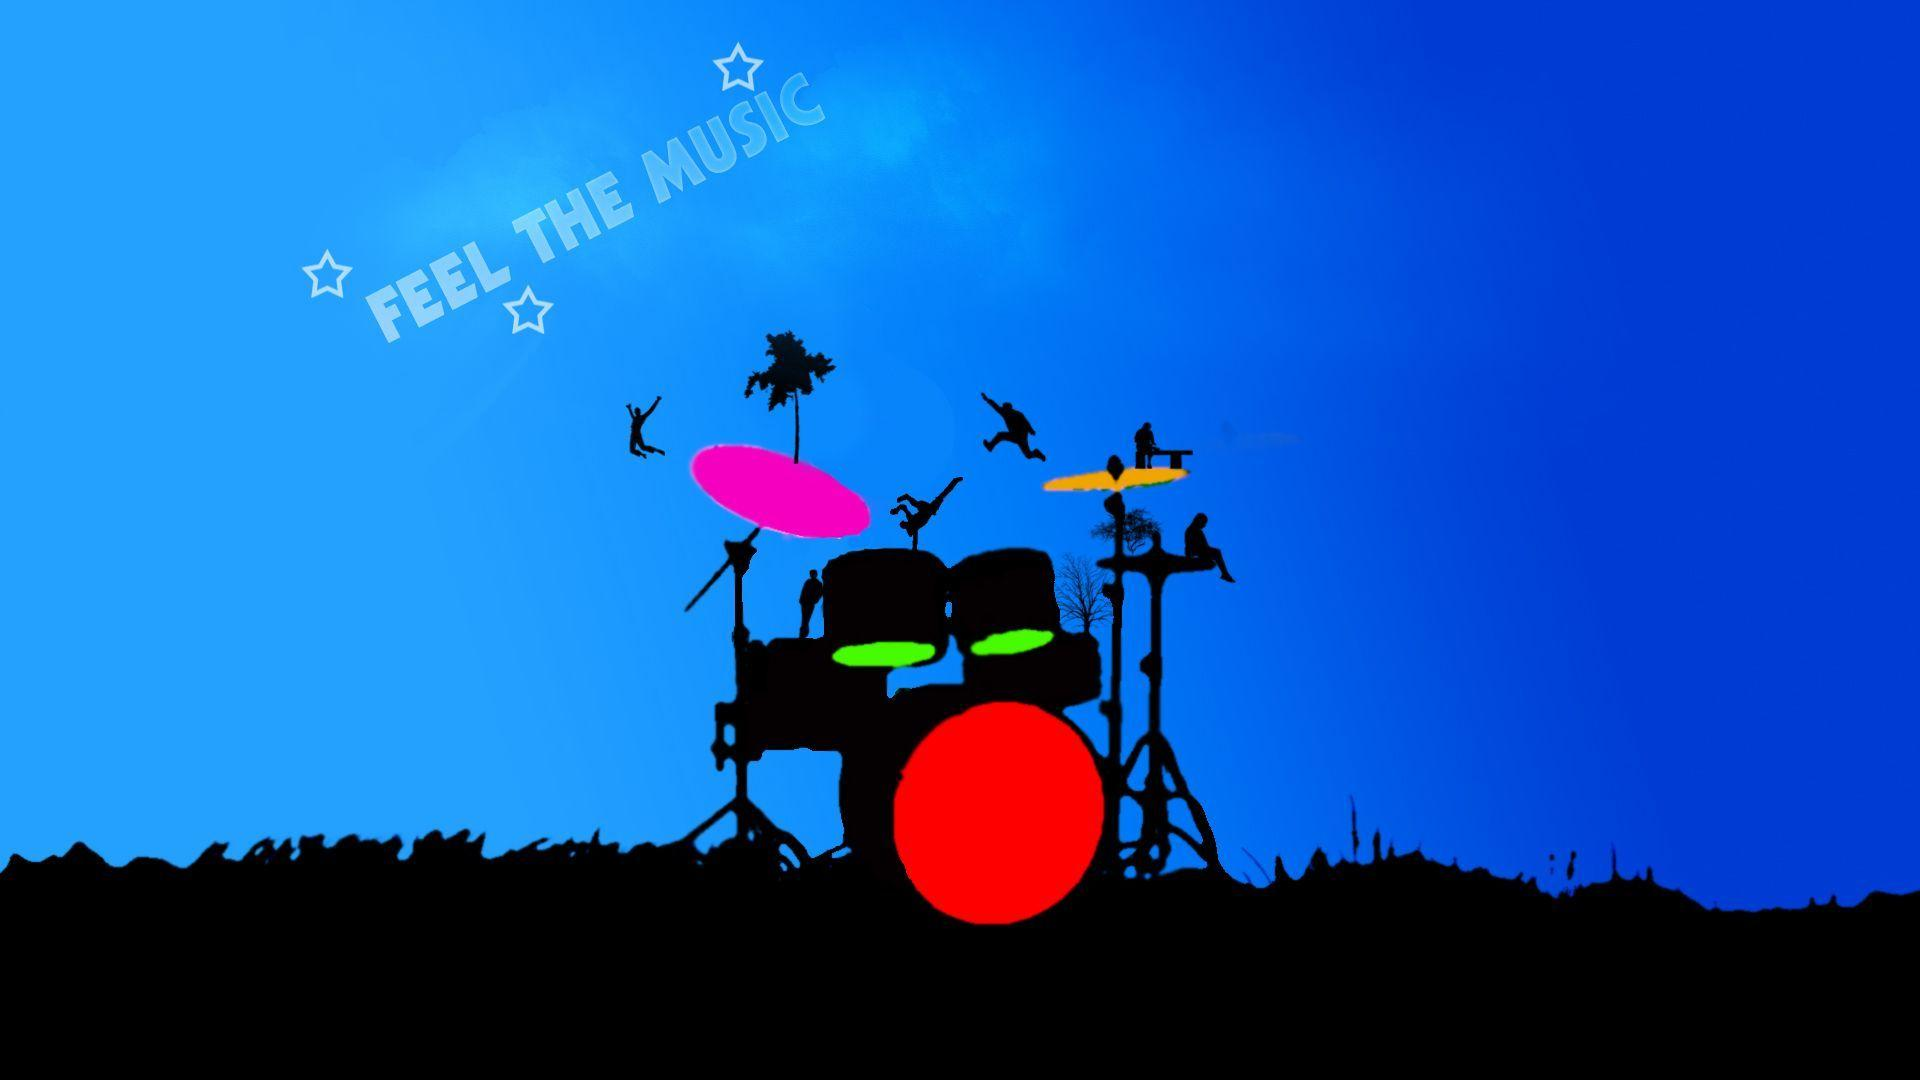 Image For > Drums On Fire Wallpapers